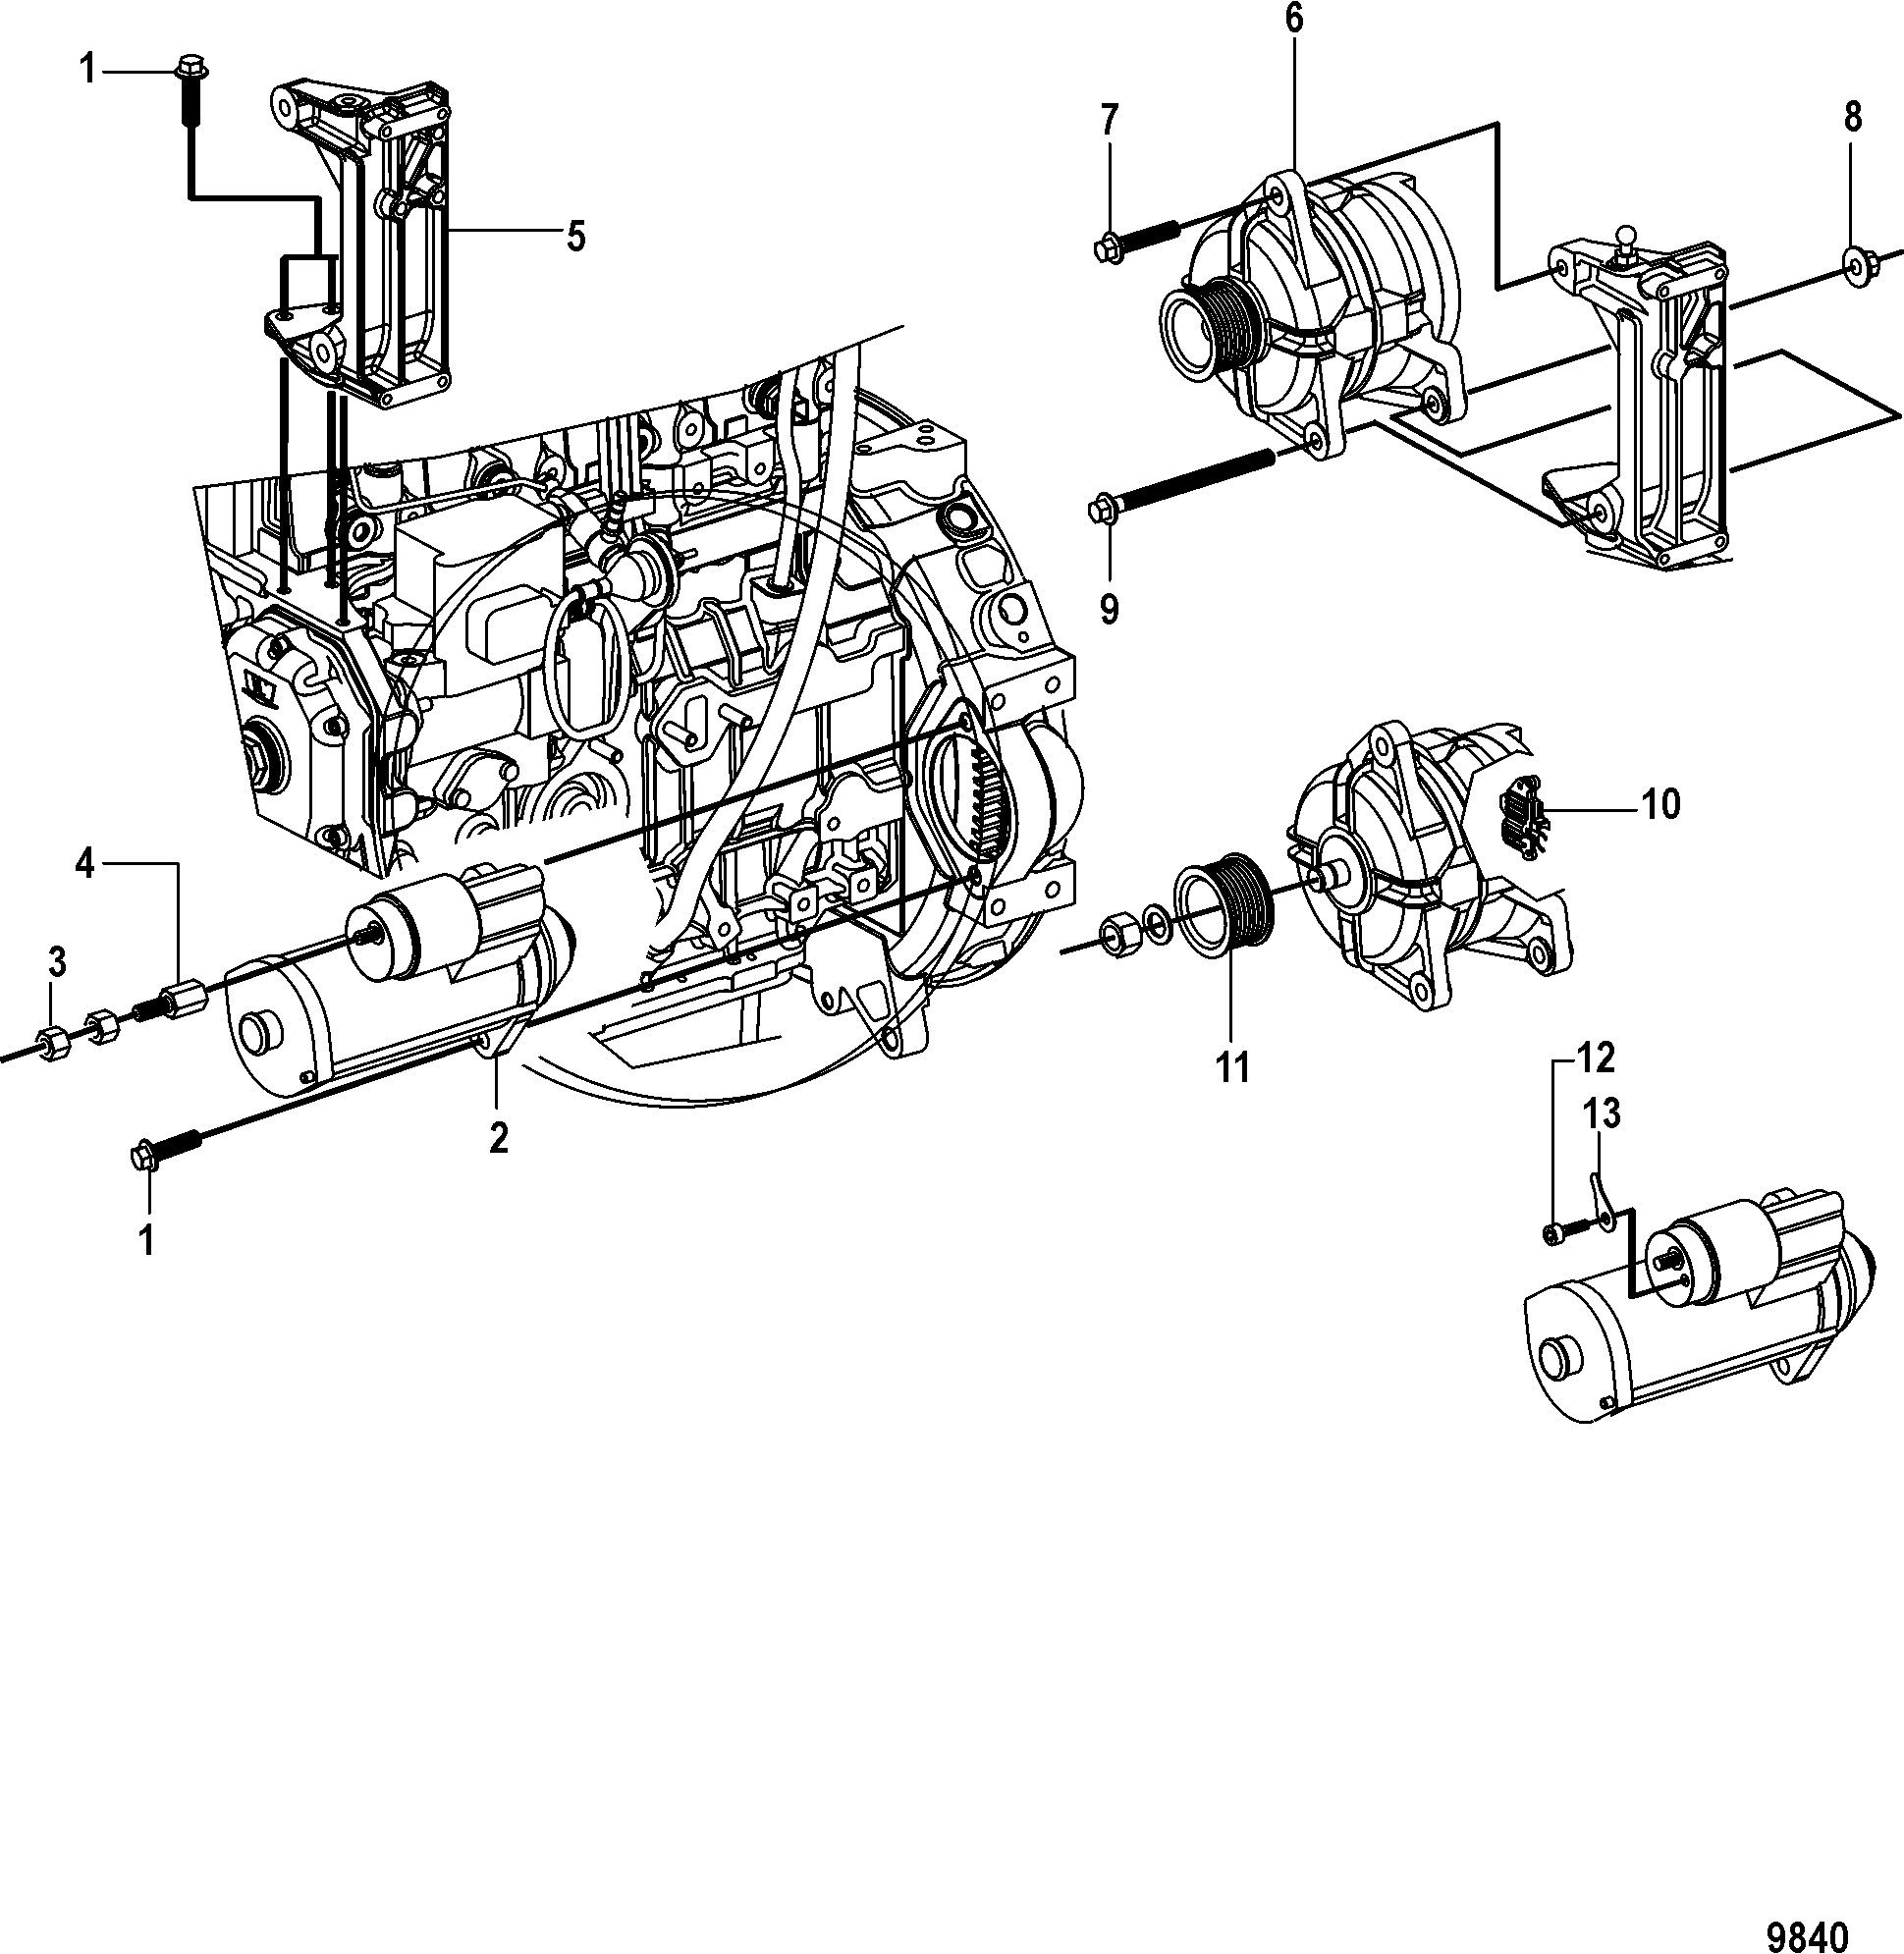 Mercruiser 170 Engine Diagram